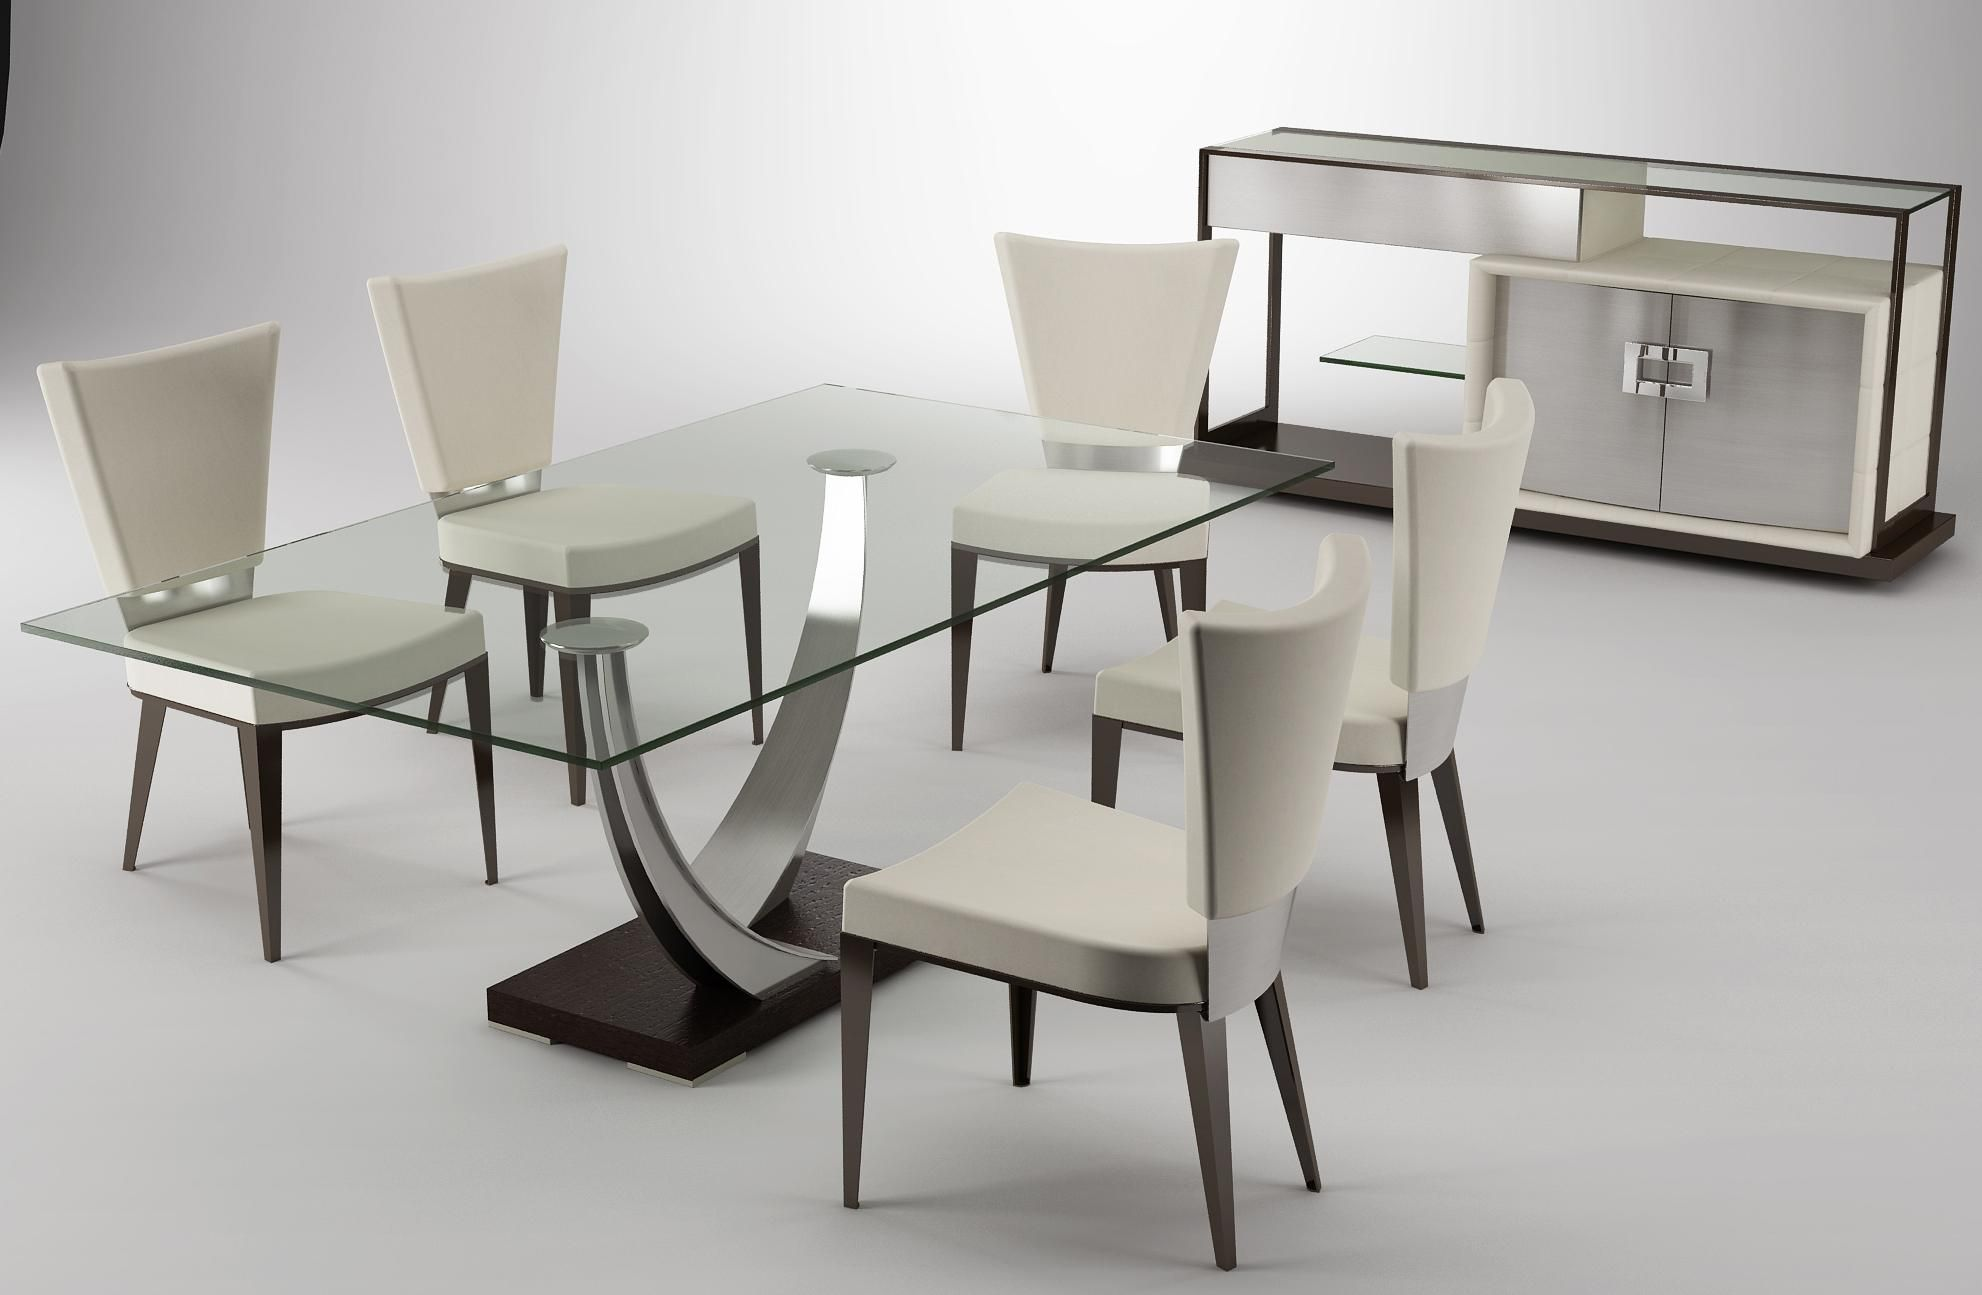 Amazing Modern Stylish Dining Room Table Set Designs Elite Tangent Glass Top